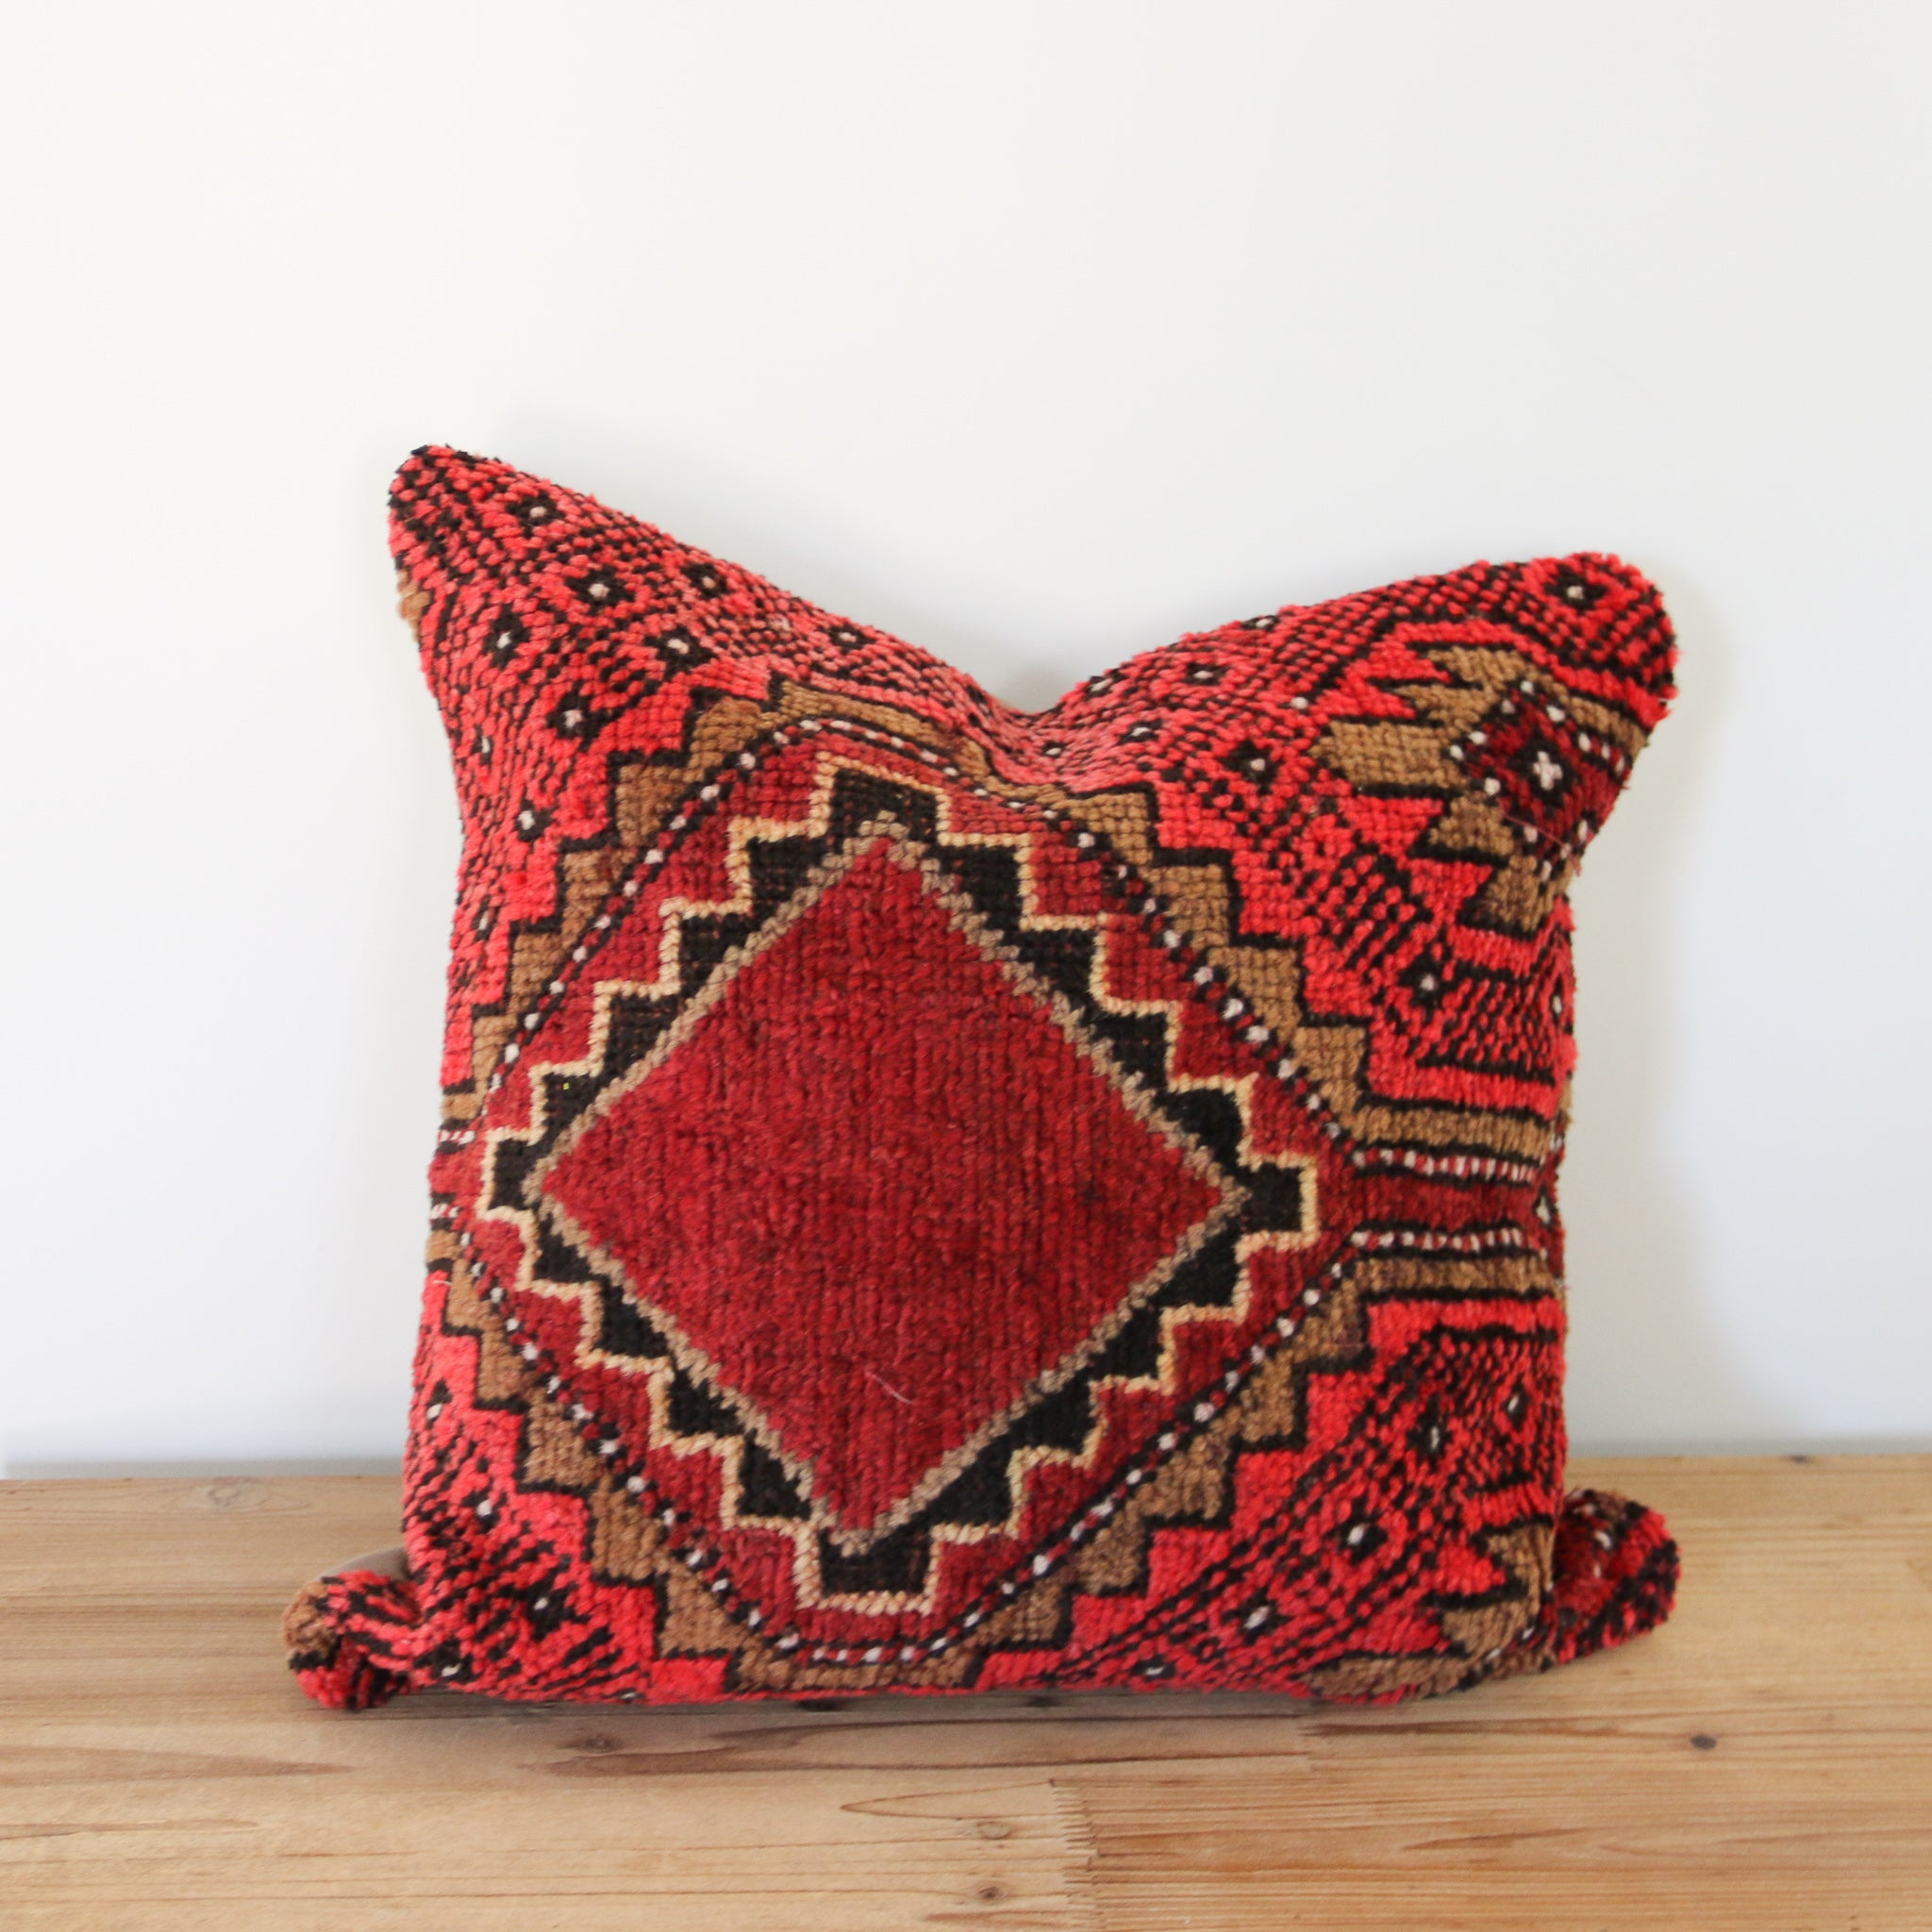 Zeliha 08 Pillow 20x20